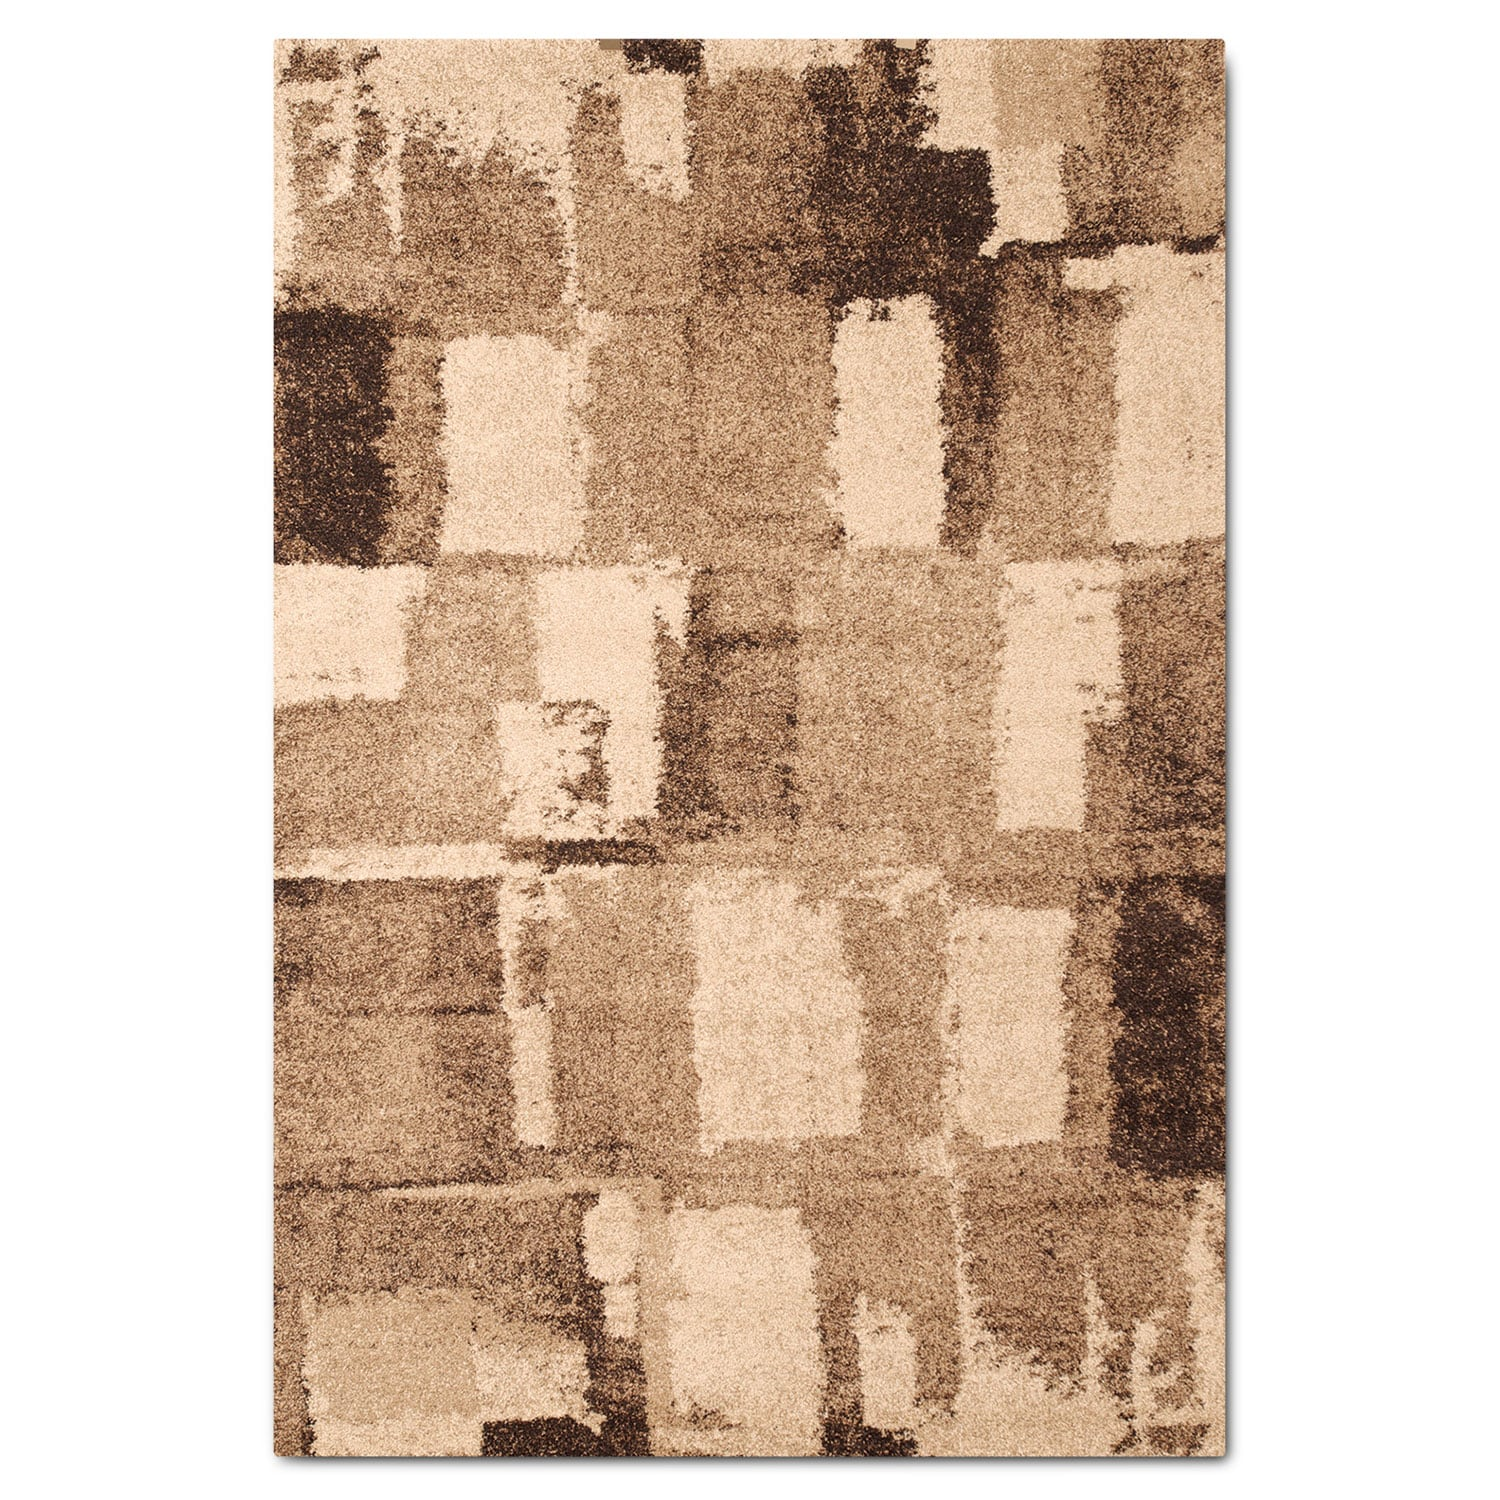 Rugs - Granada Area Rug - Chocolate and Tan